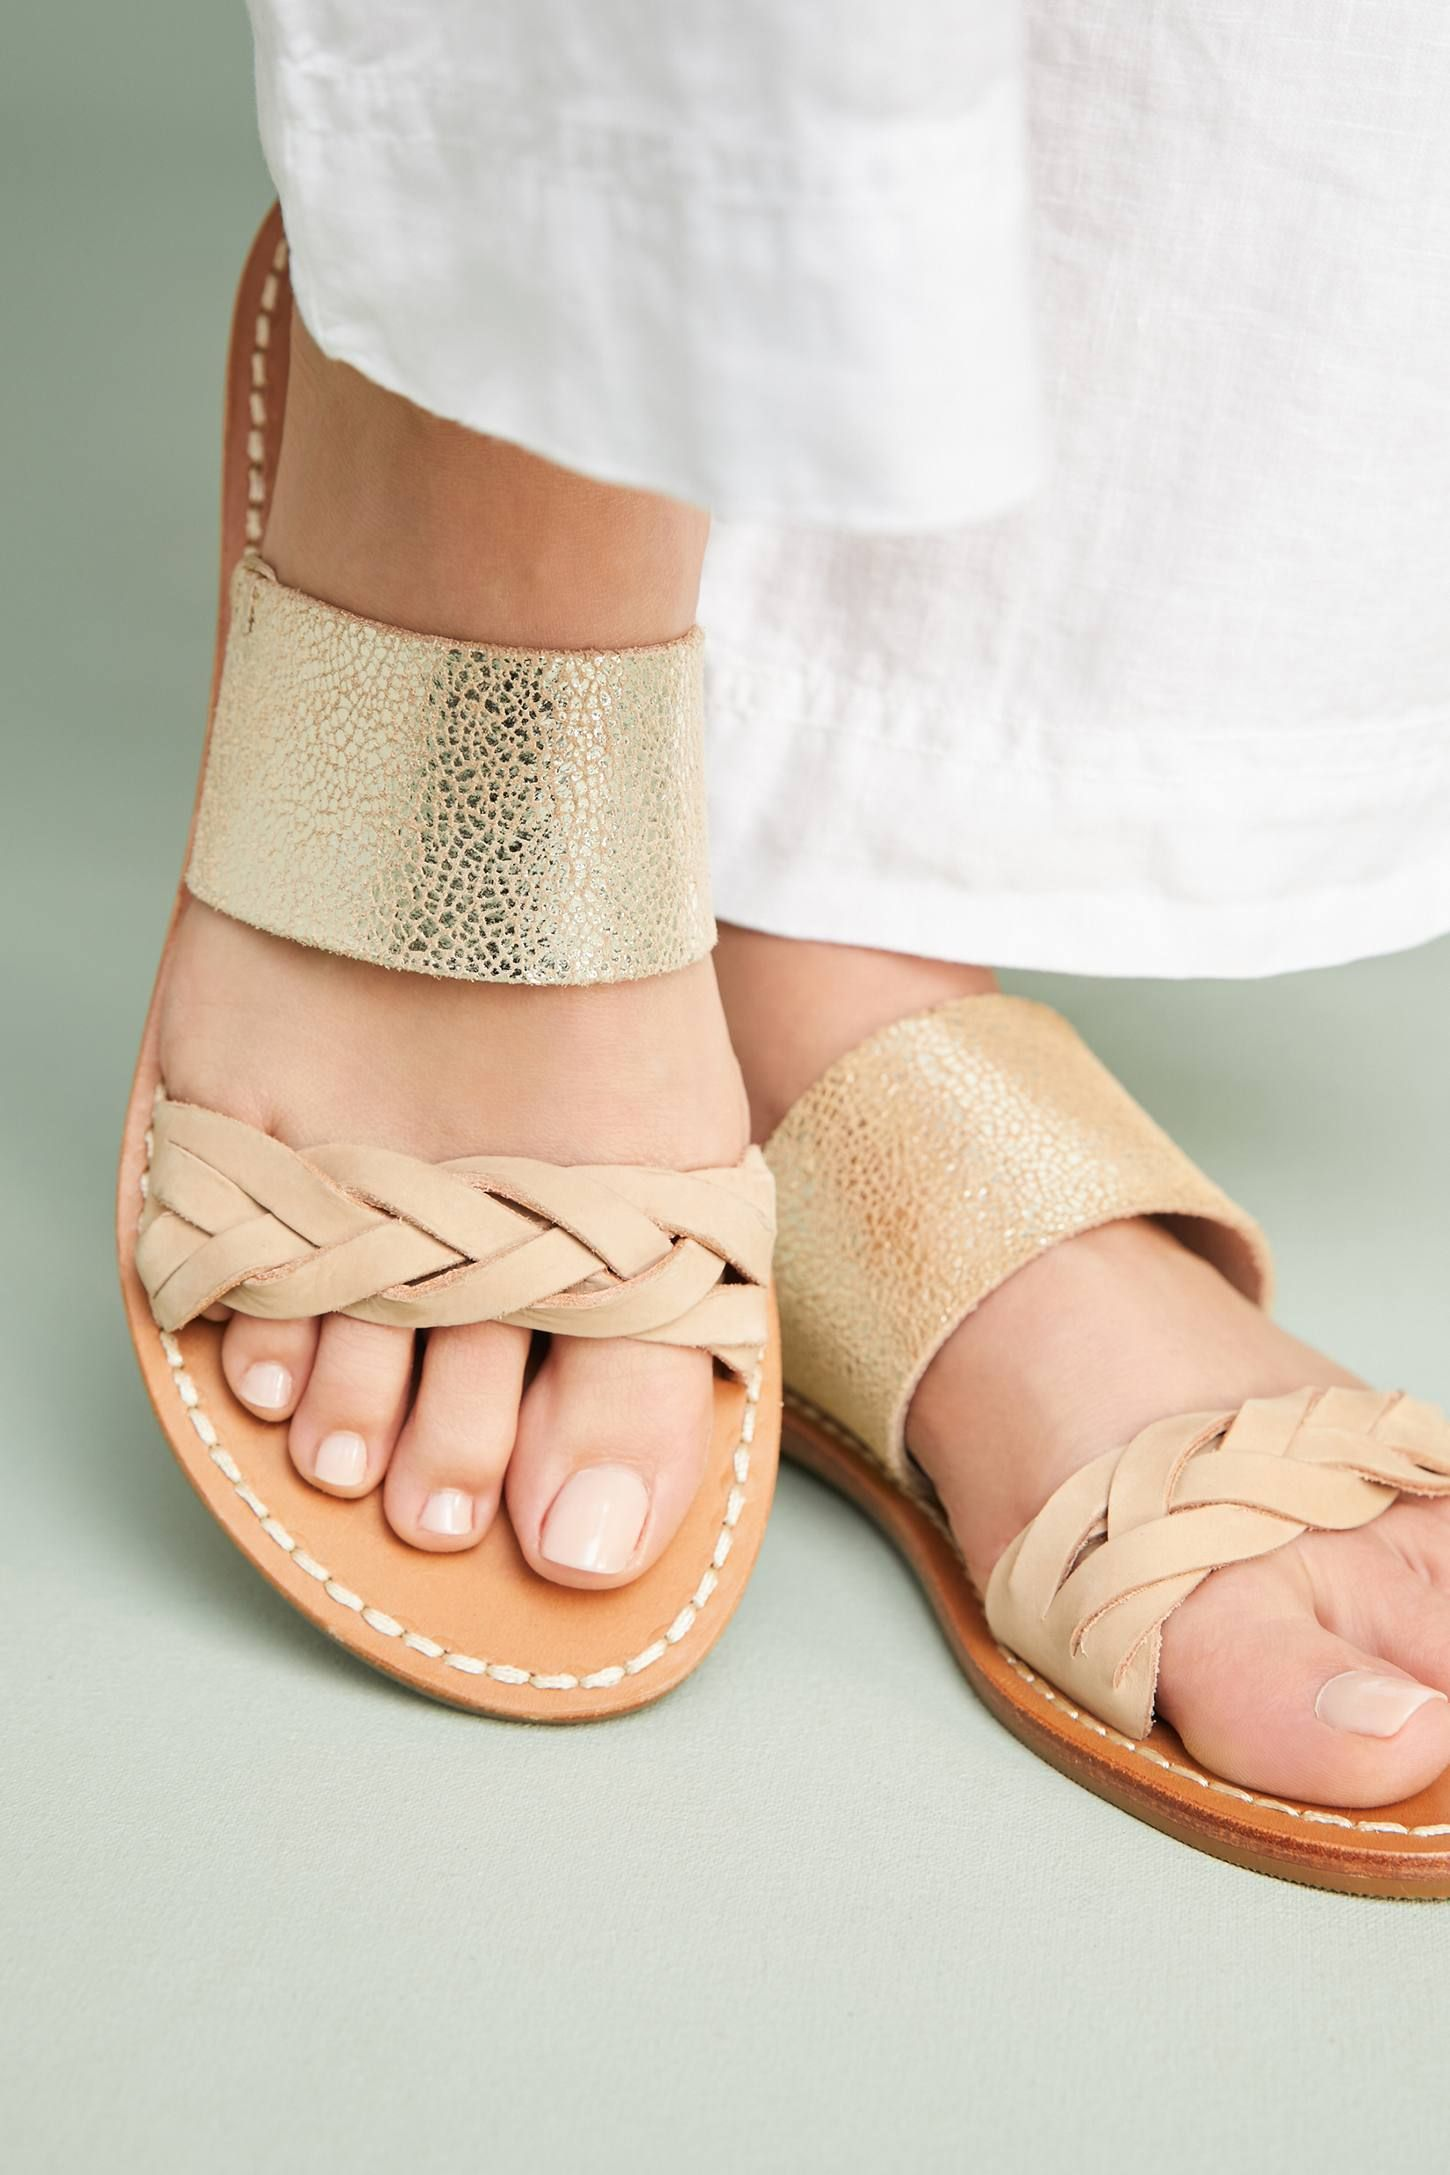 80467cdd9953 Shop the Soludos Metallic Braided Slide Sandals and more Anthropologie at  Anthropologie today. Read customer reviews